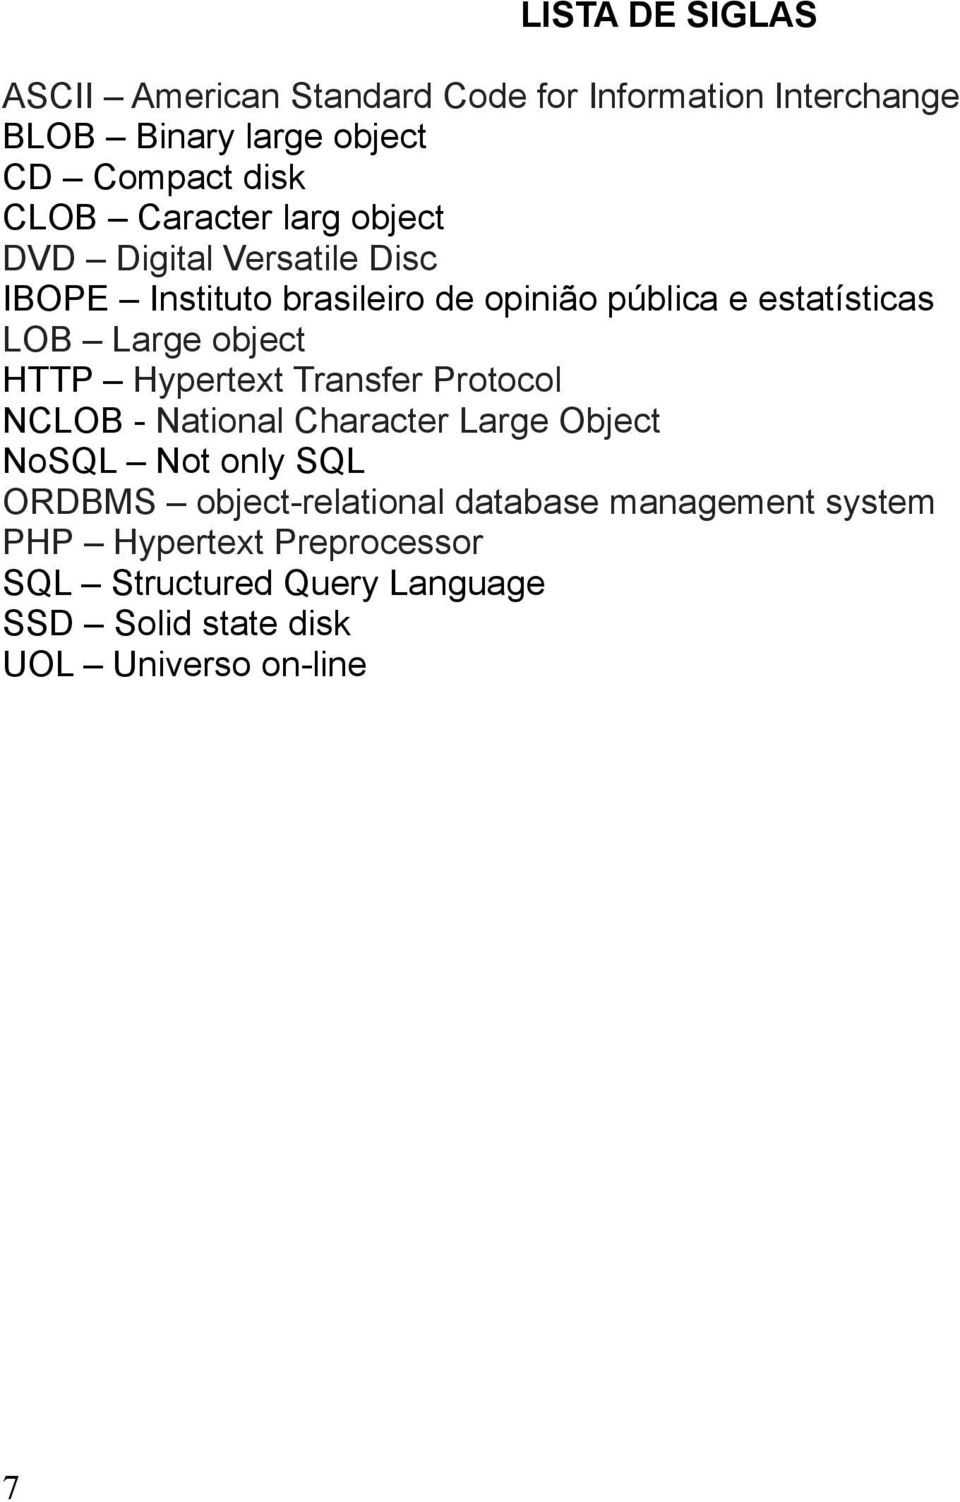 object HTTP Hypertext Transfer Protocol NCLOB - National Character Large Object NoSQL Not only SQL ORDBMS